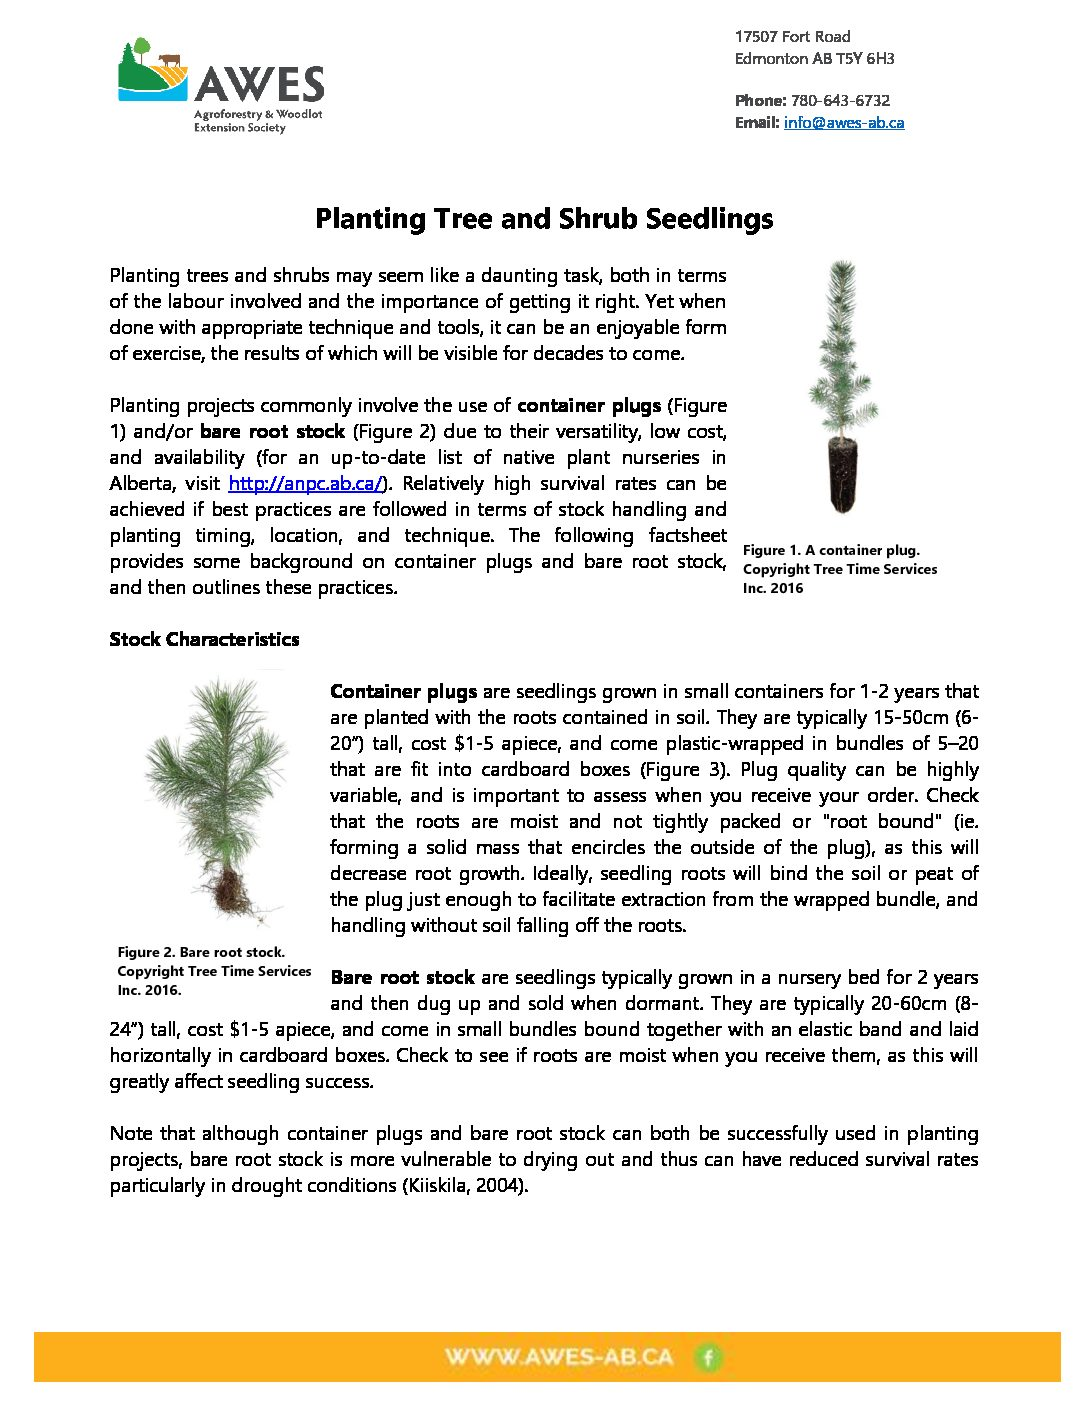 Planting Tree and Shrub Seedlings